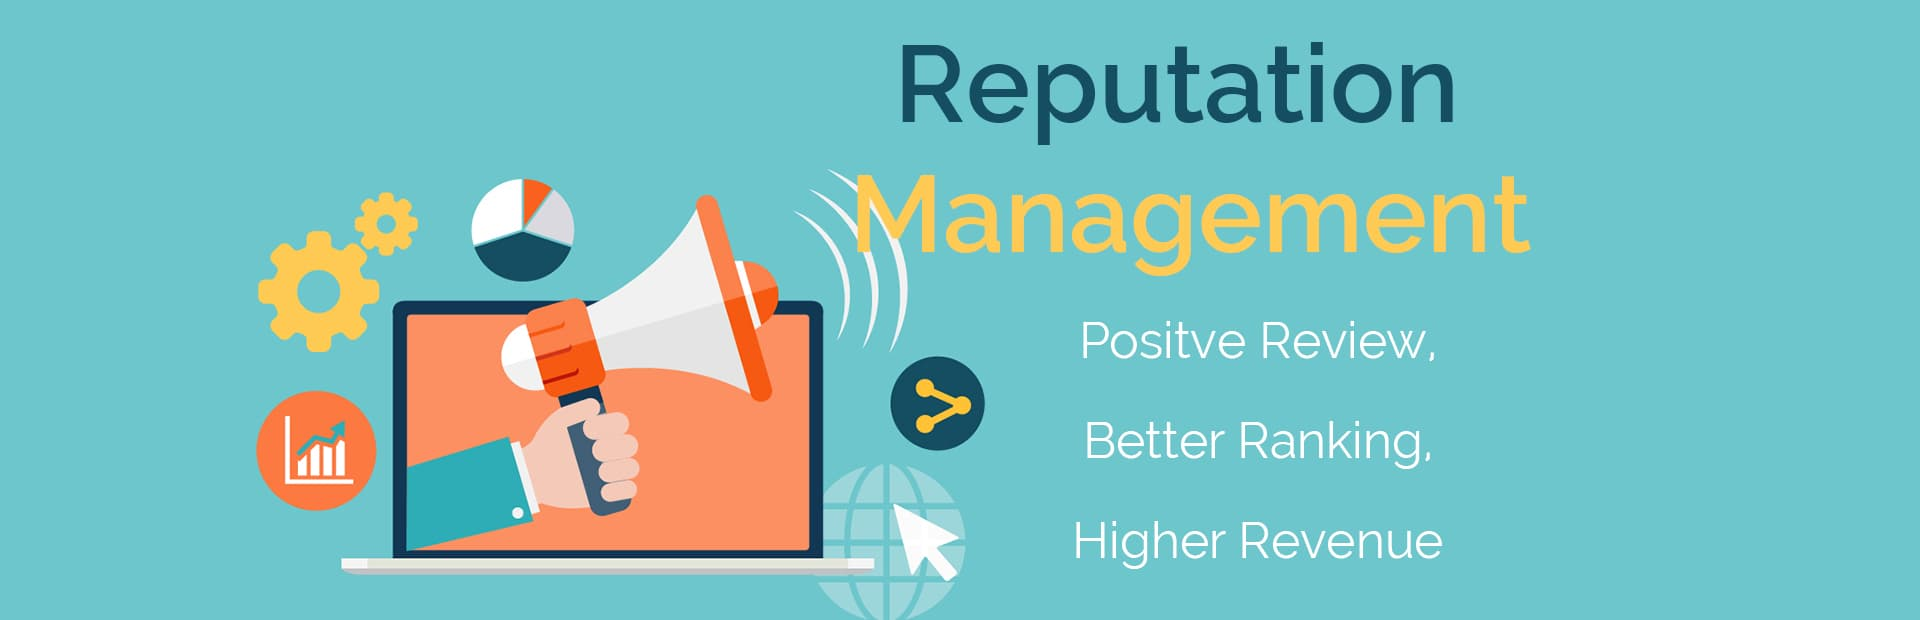 small business online reputation management services